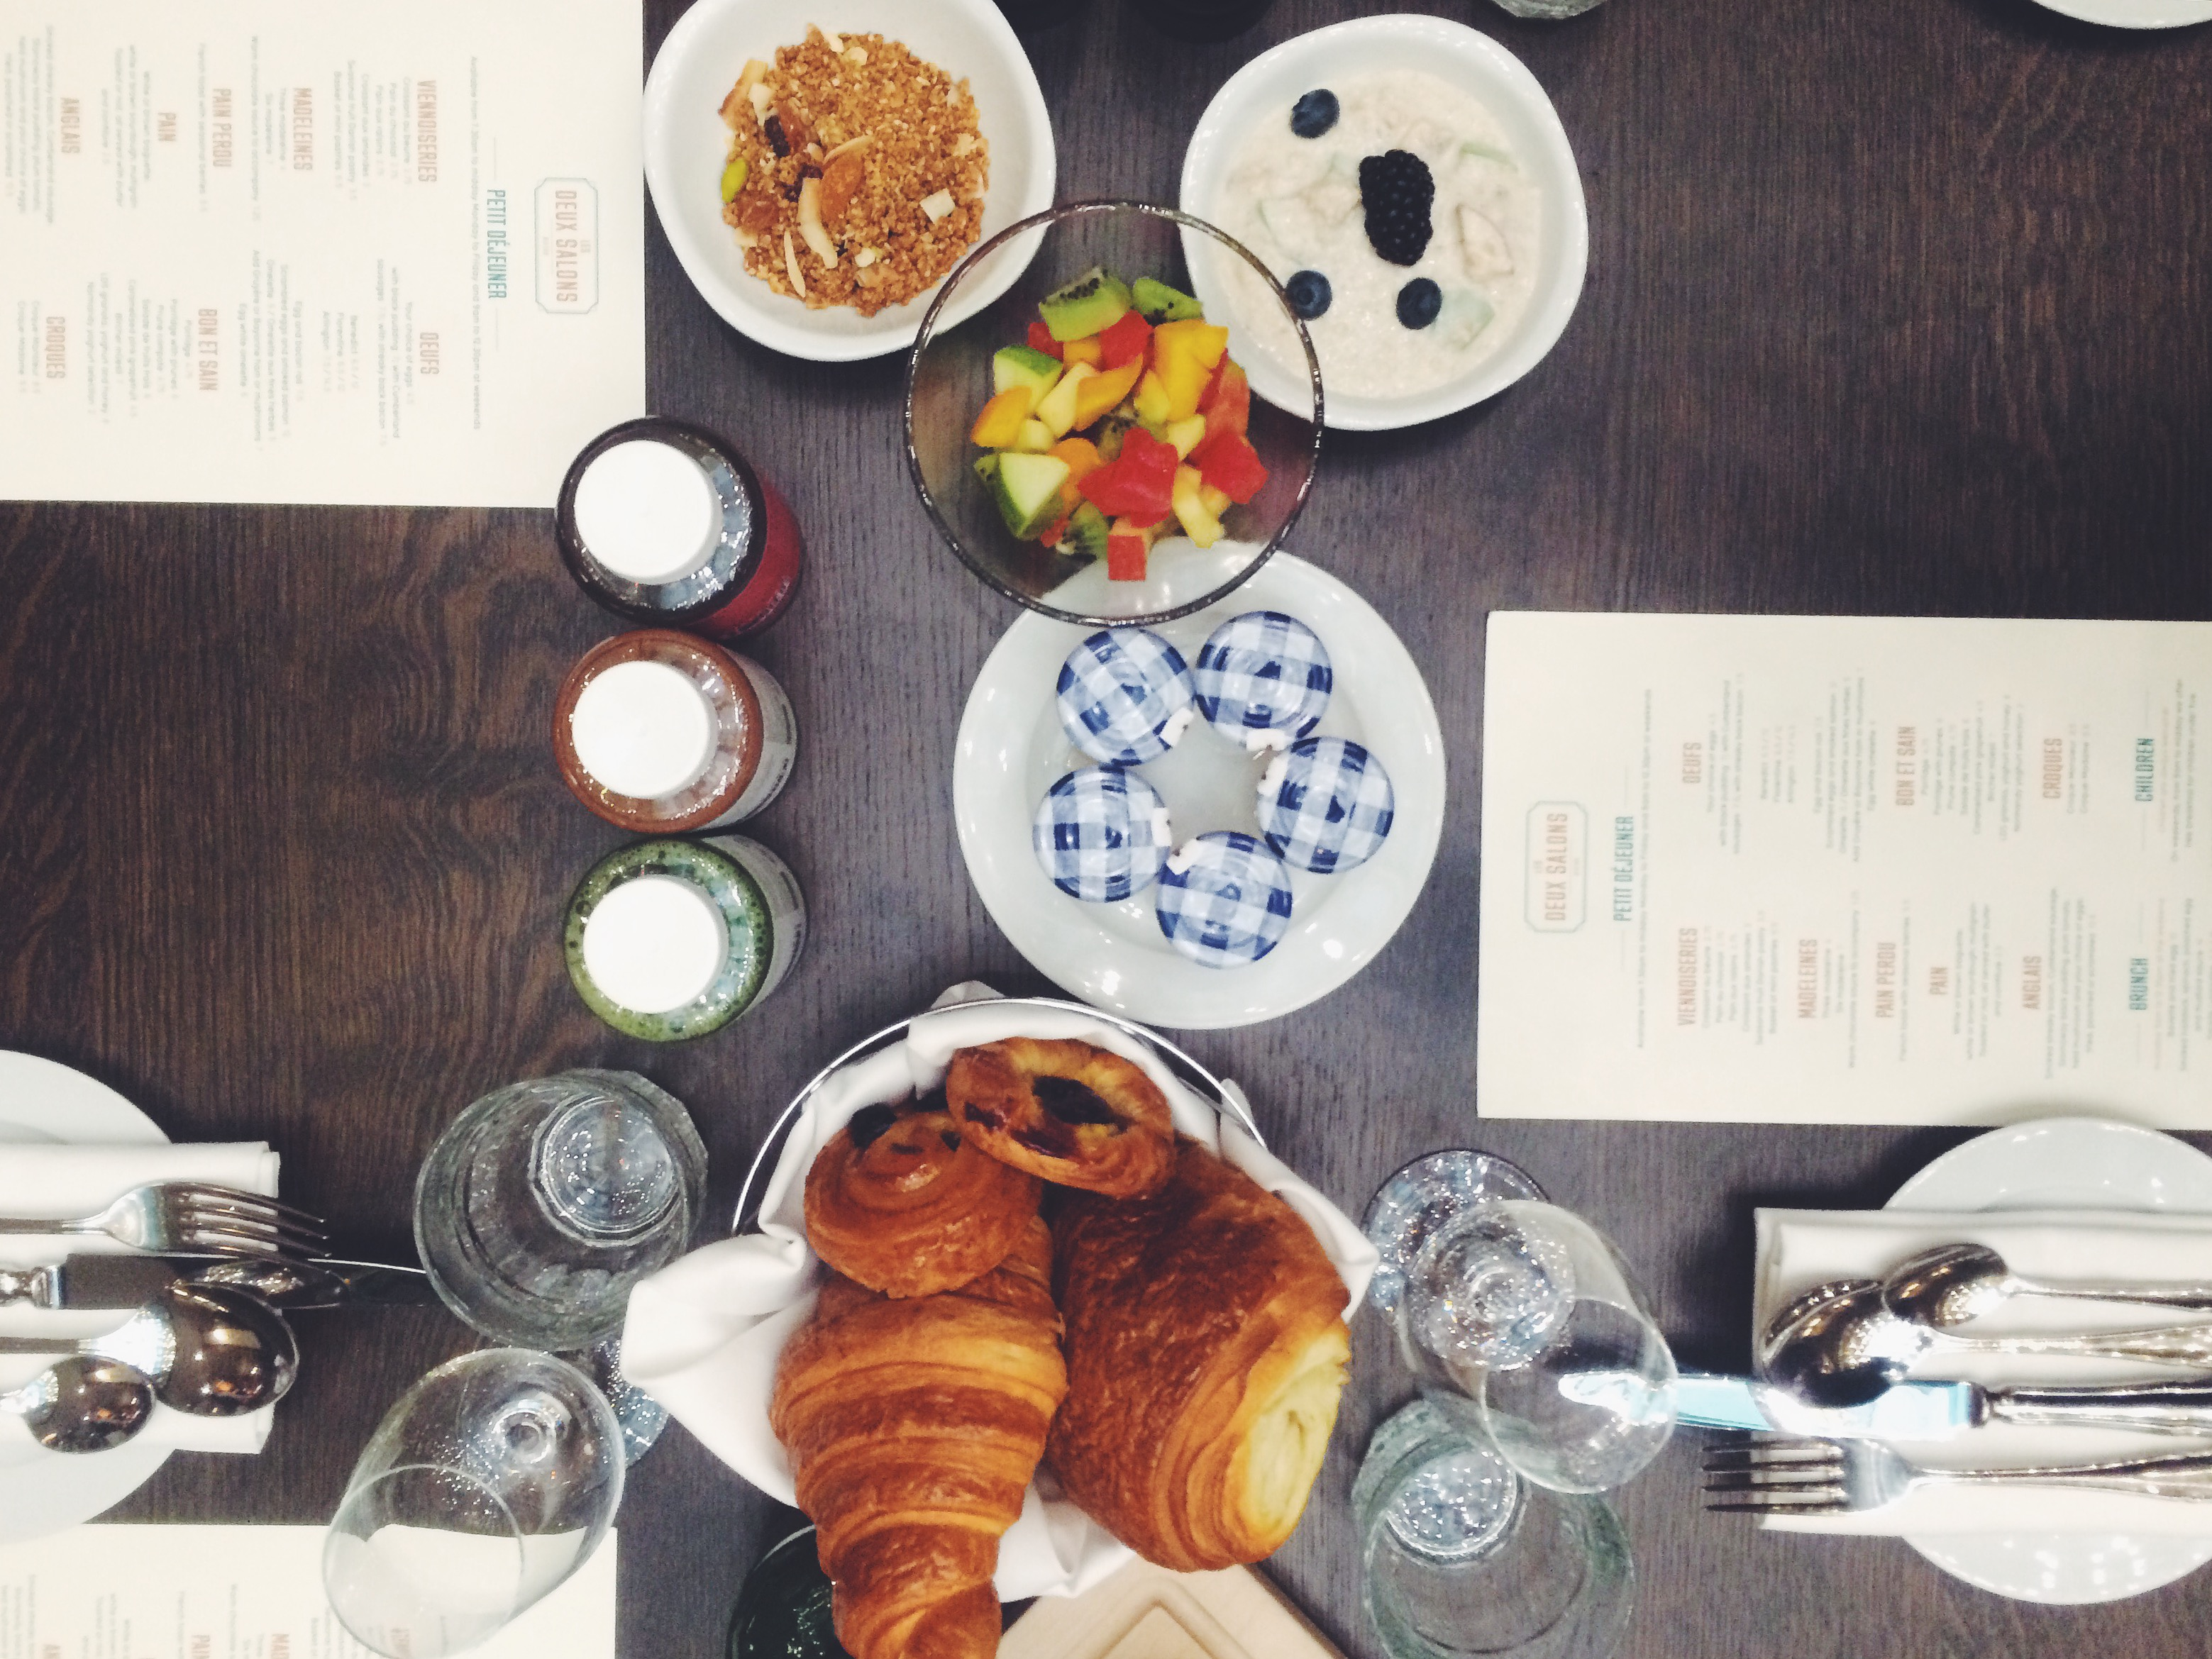 Les Deux Salons launches breakfast menu